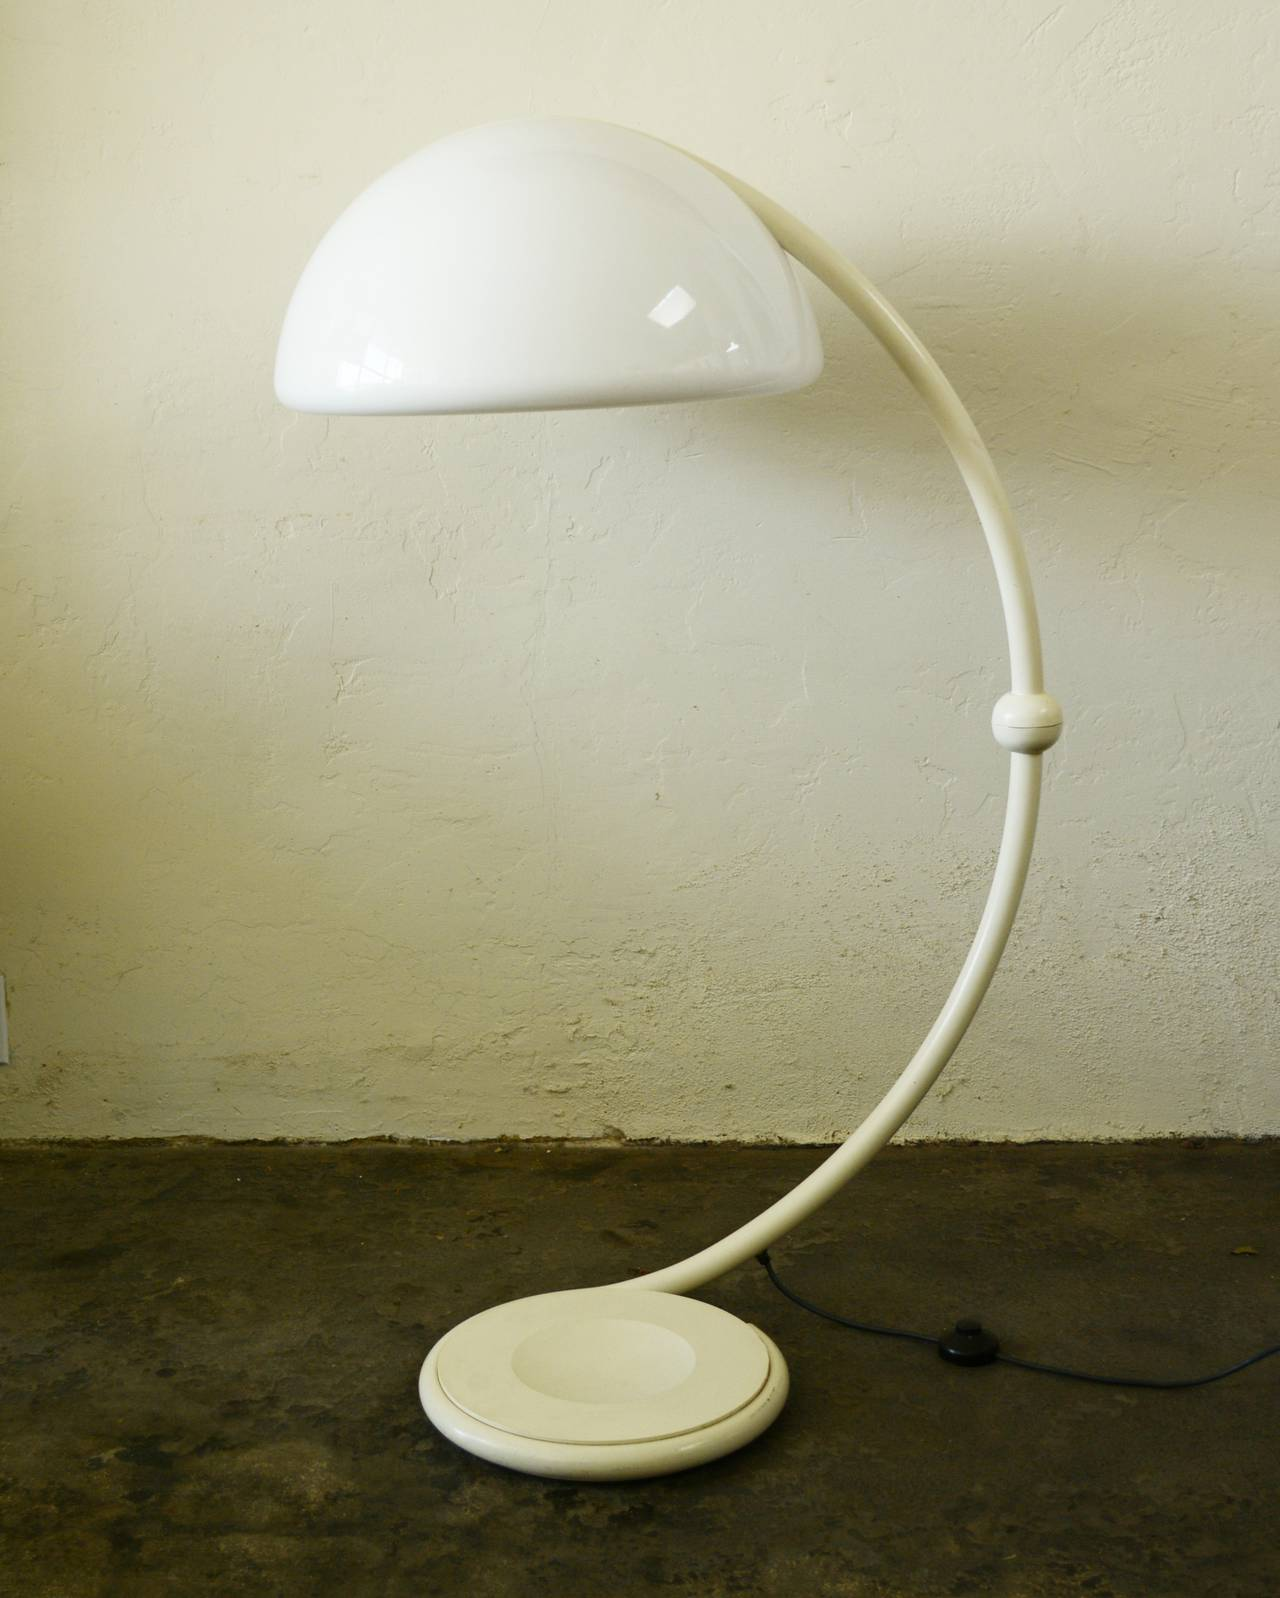 Classic lamp design by Elio Martinelli. The top half of this lamp pivots 360 degrees creating many different looks. This has some wear in spots to the paint and one touched up spot. The acrylic shade has minor wear and a couple of small deeper